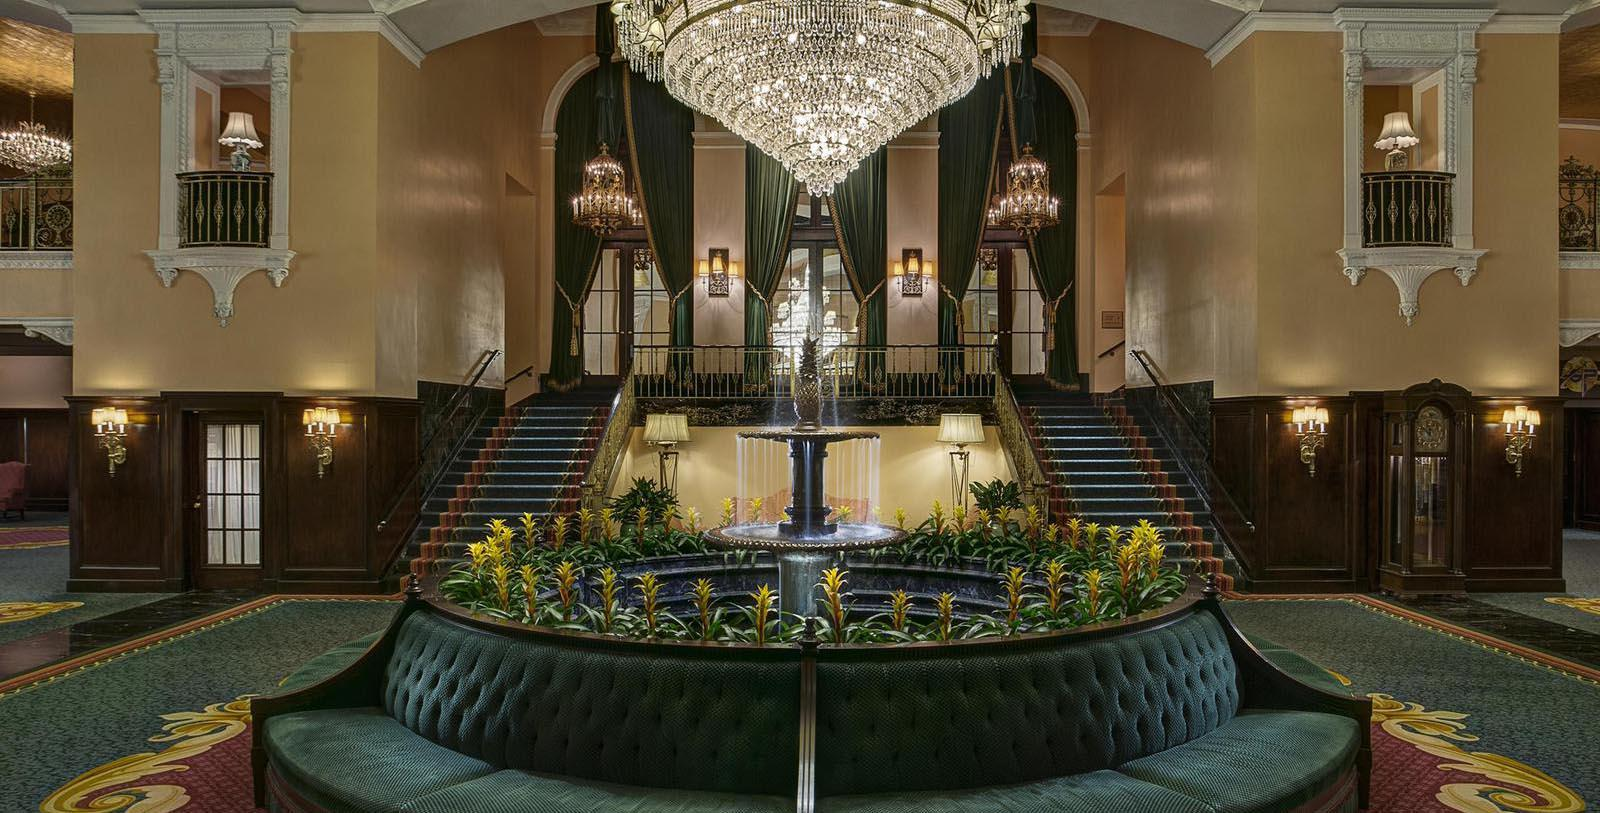 Image of Lobby at Amway Grand Plaza Hotel, 1913, 1913, Member of Historic Hotels of America, in Grand Rapids, Michigan, Overview